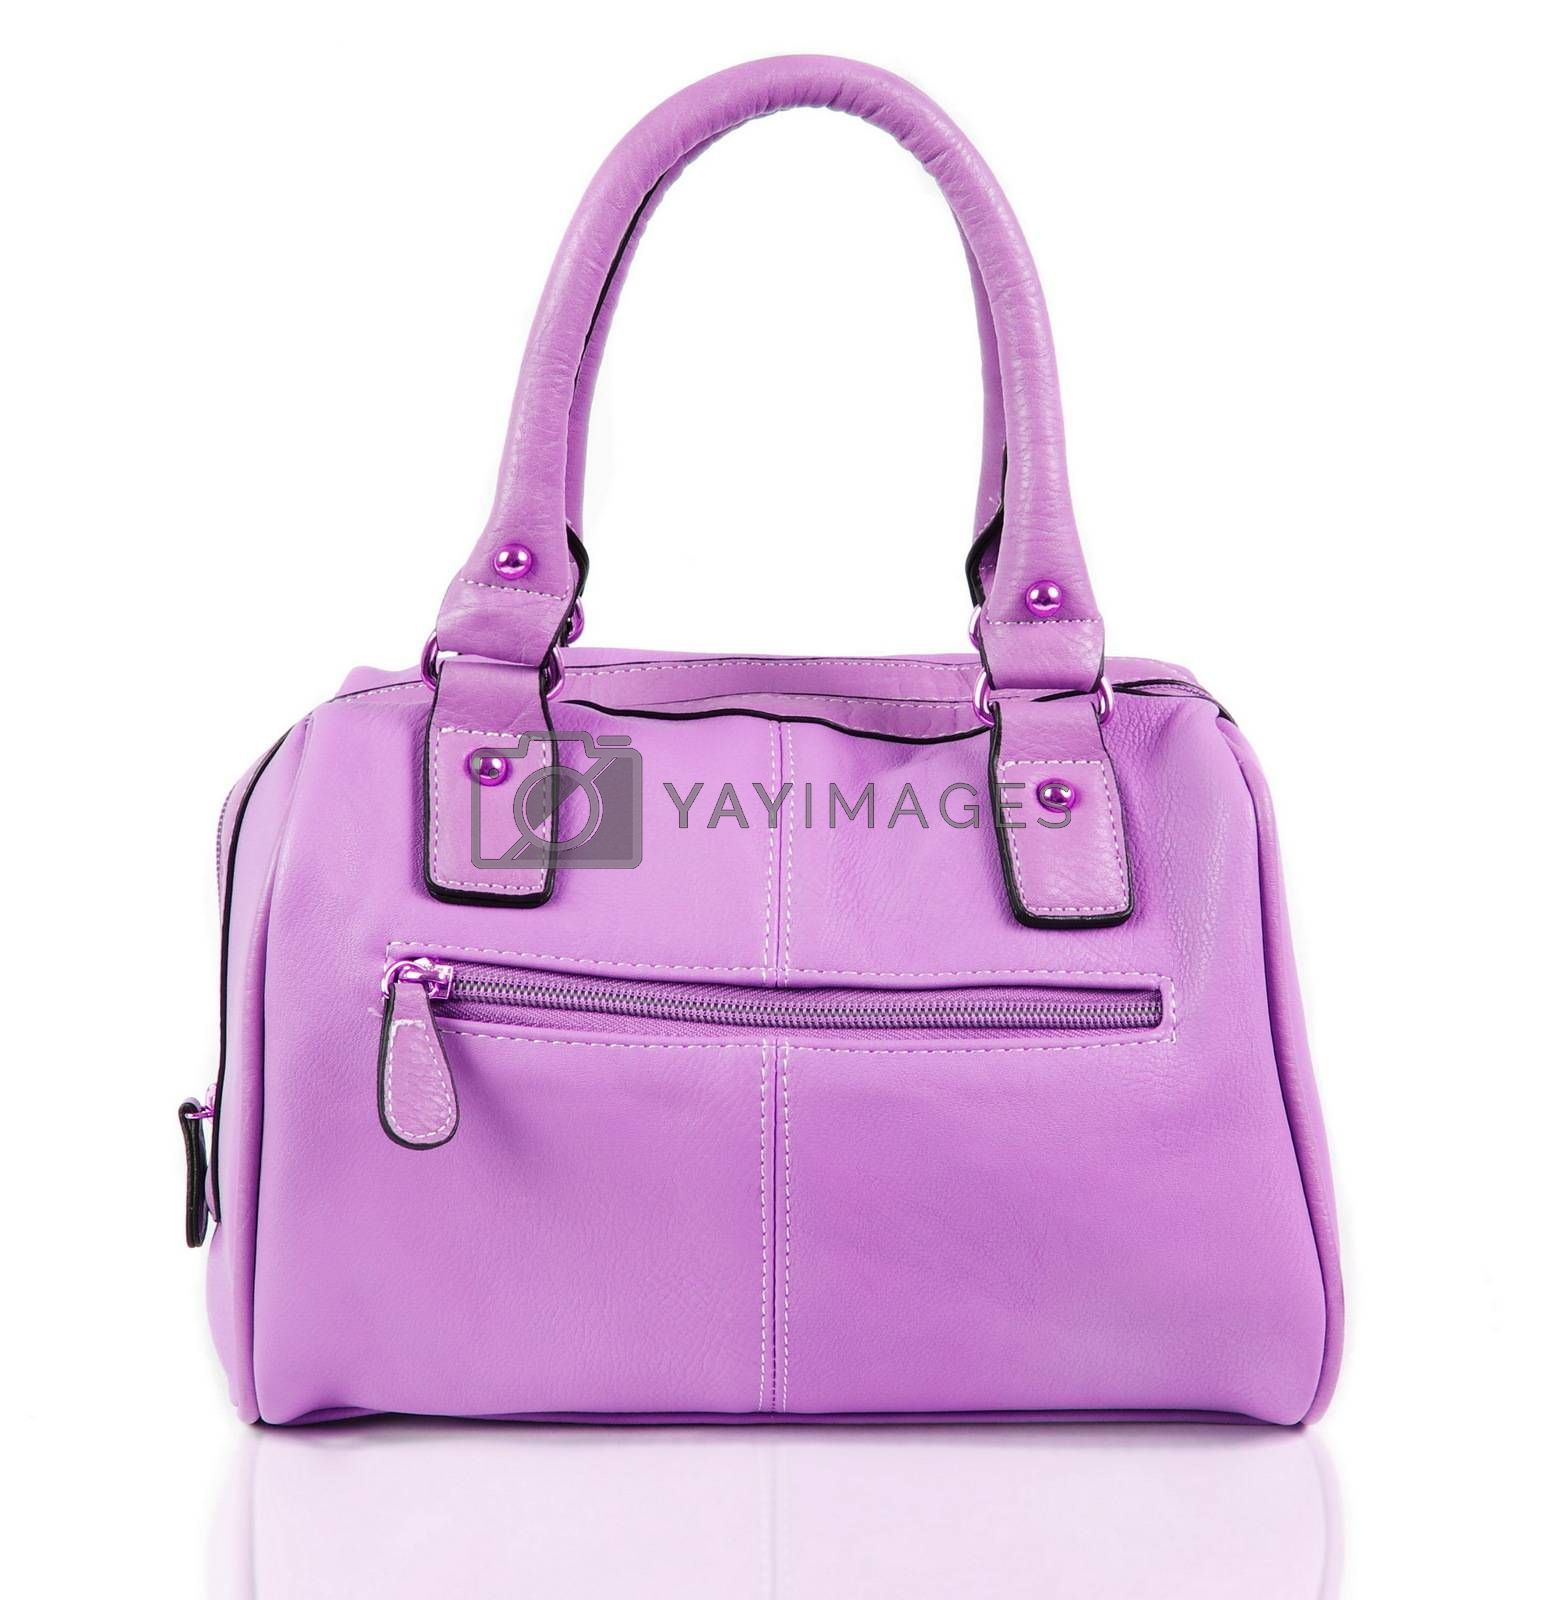 fashionable female bag over white